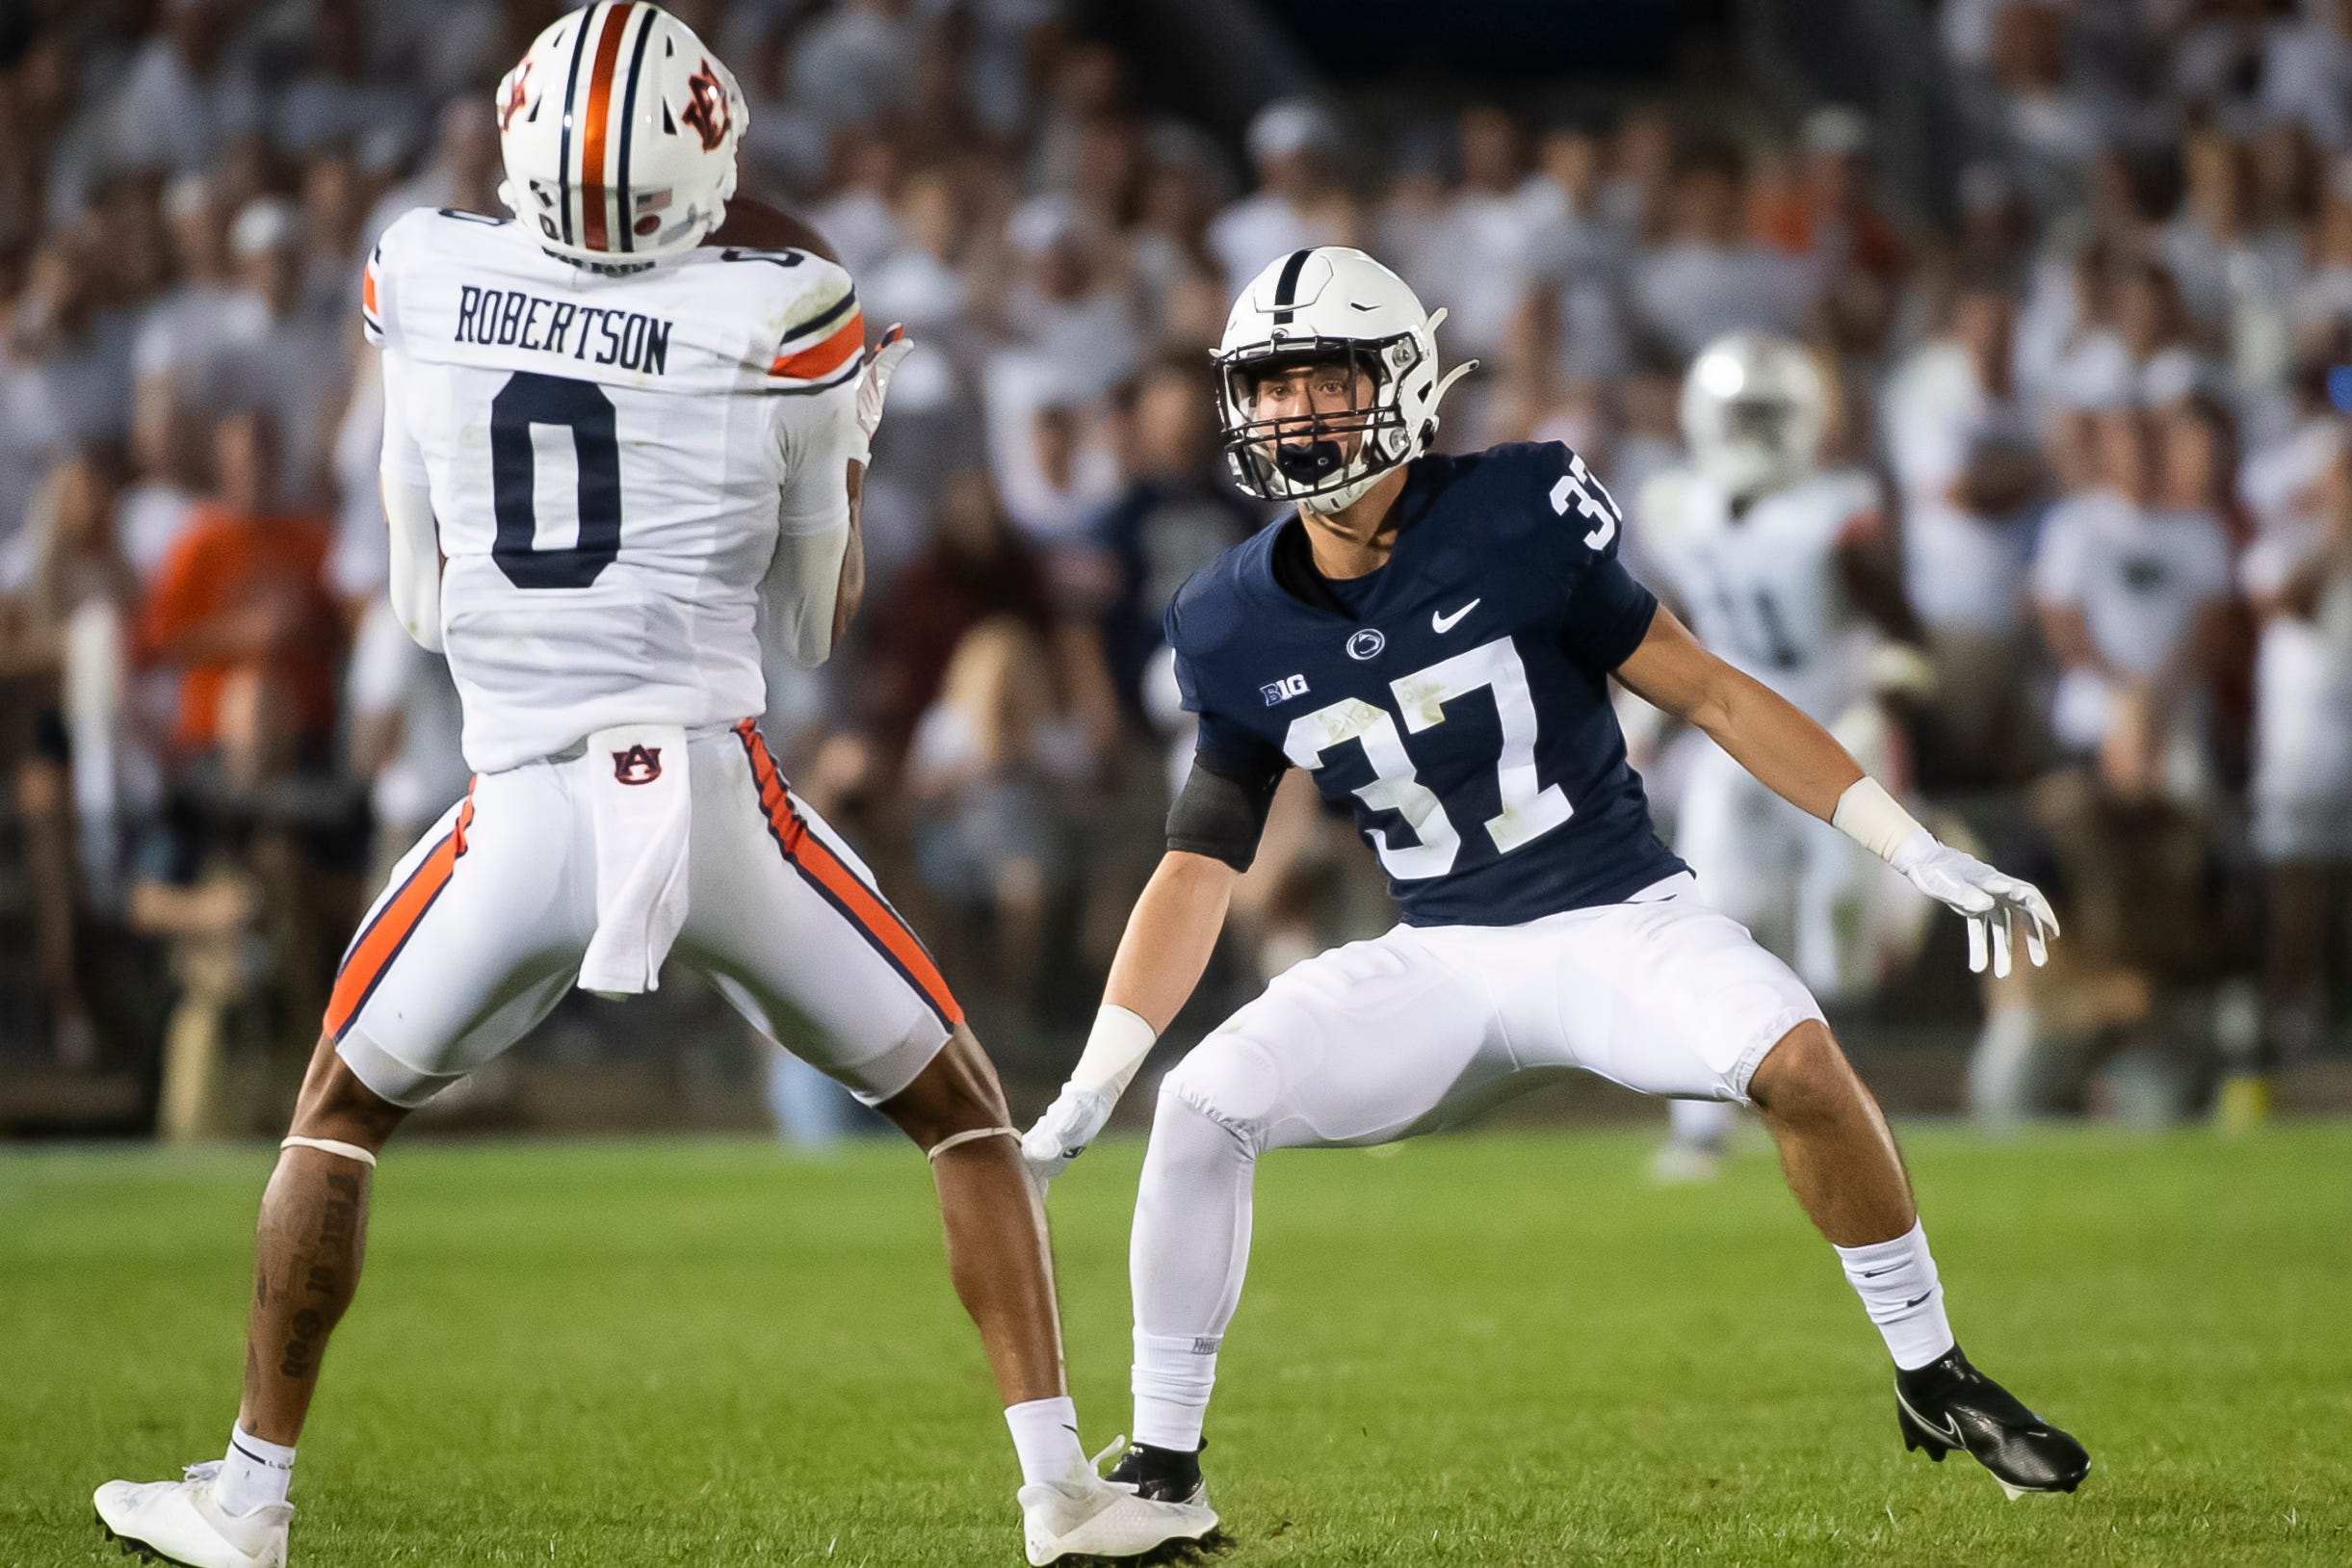 Penn State gunner Drew Hartlaub is the first Nittany Lion down the field to cover a punt return by Auburn's Demetris Robertson in the fourth quarter at Beaver Stadium on Saturday, Sept. 18, 2021, in State College. Robertson signaled and completed a fair catch.